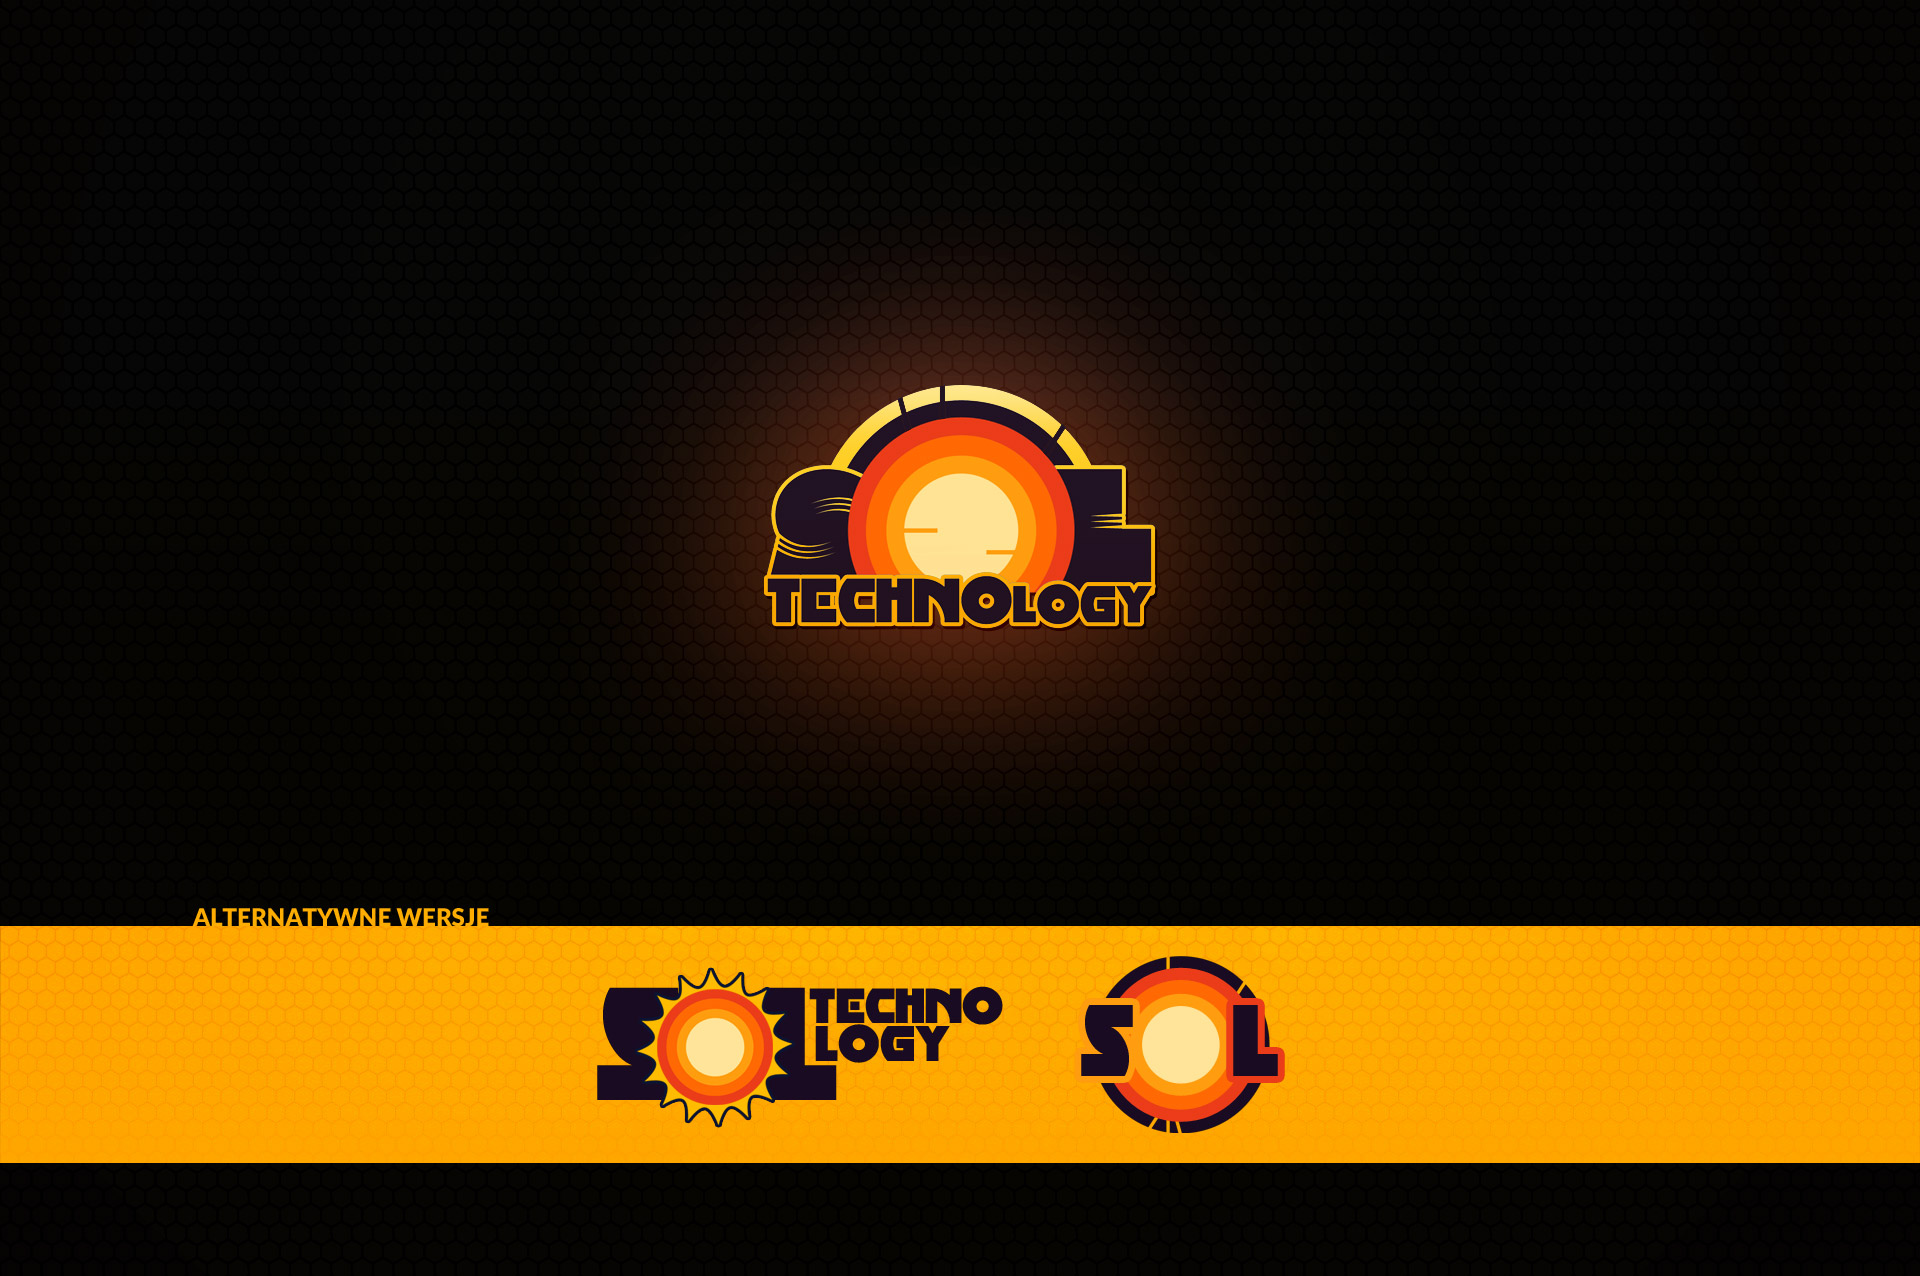 logo SOL TECHNOlogy